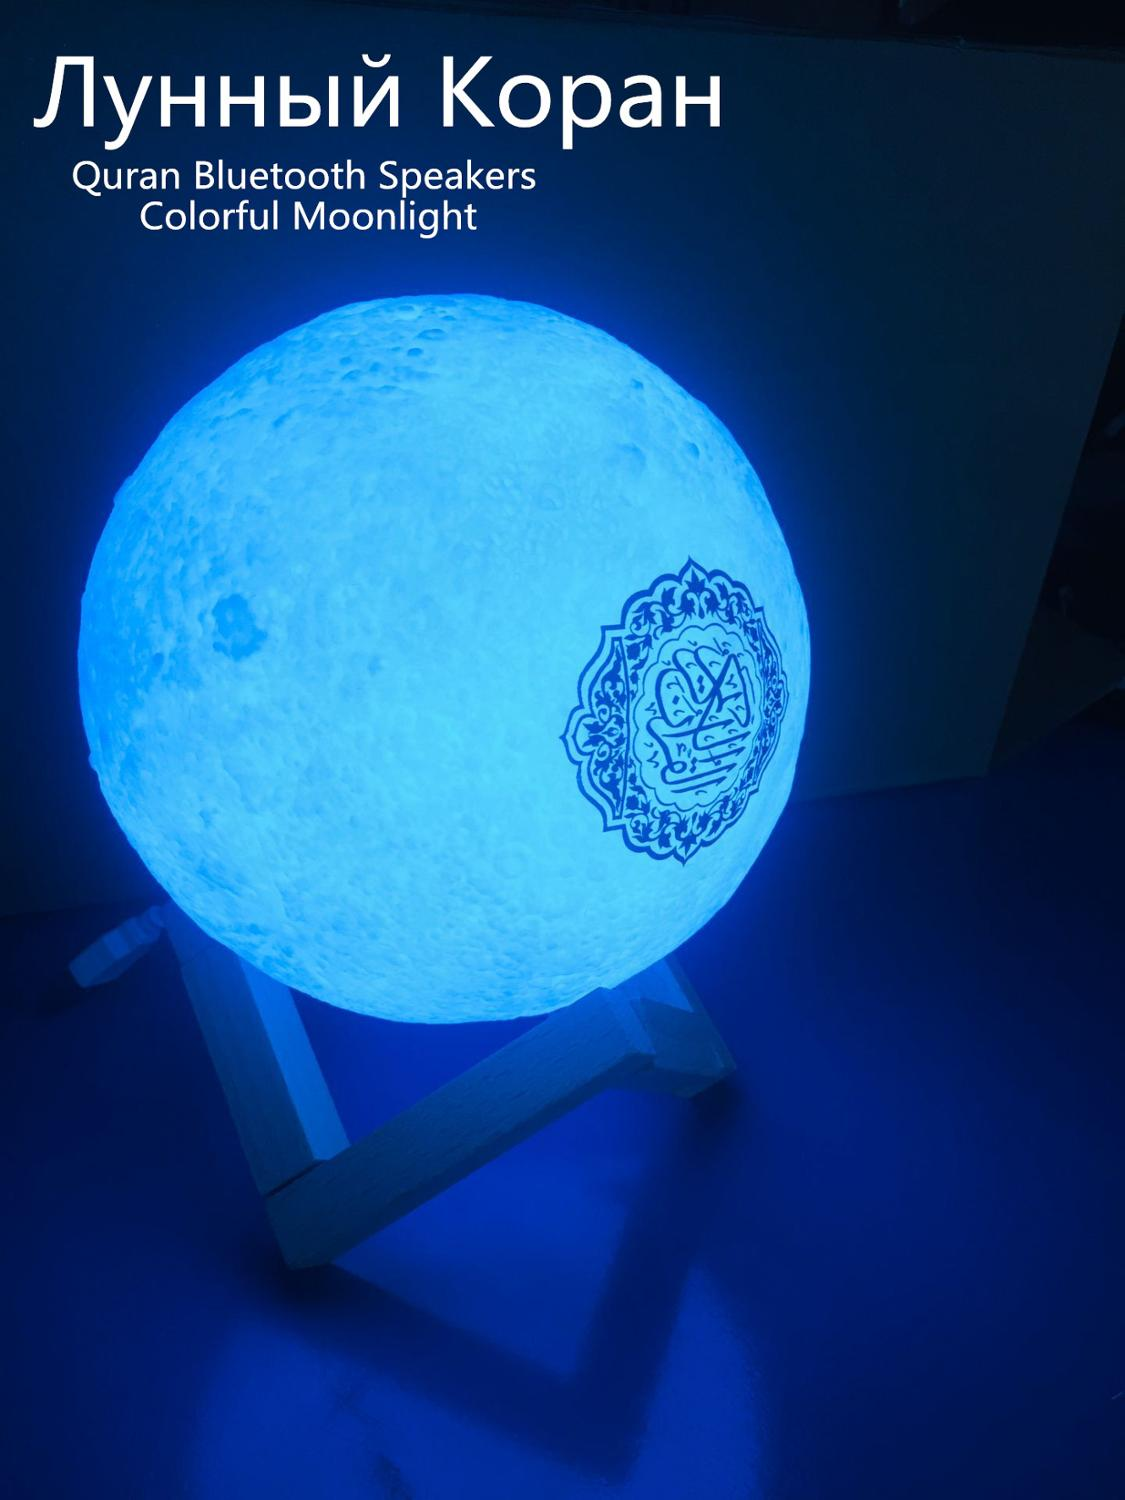 RGB Wireless Bluetooth Speaker Quran Colorful Moonlight LED Light Moon Lamp Koran Reciter Muslim Speaker With Remote Control